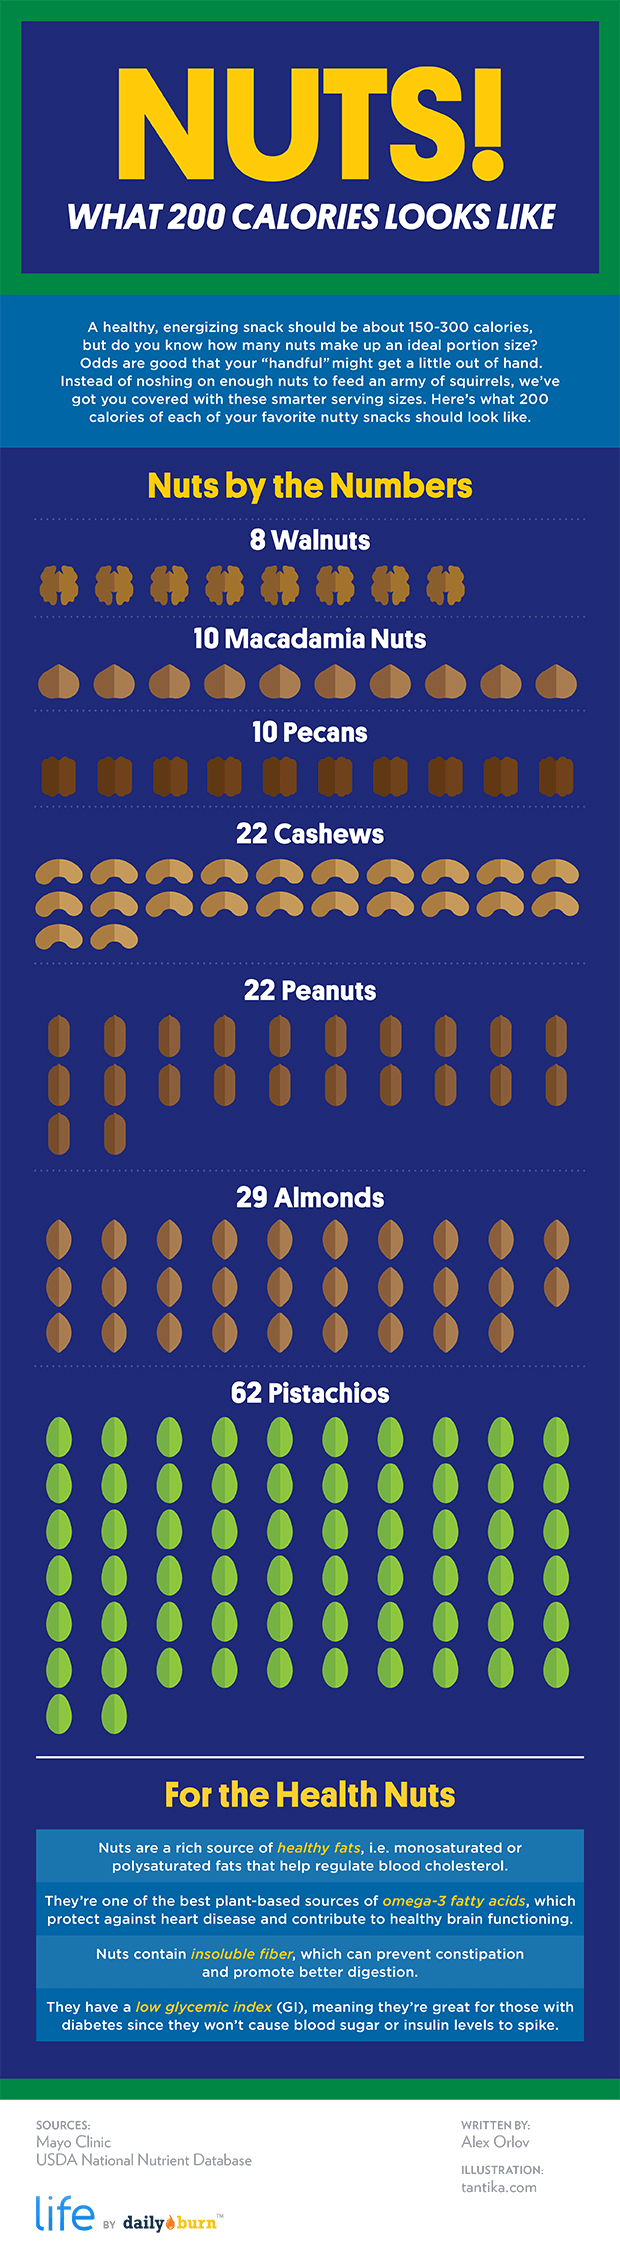 This Is What 200 Calories of Nuts Looks Like - INFOGRAPHIC